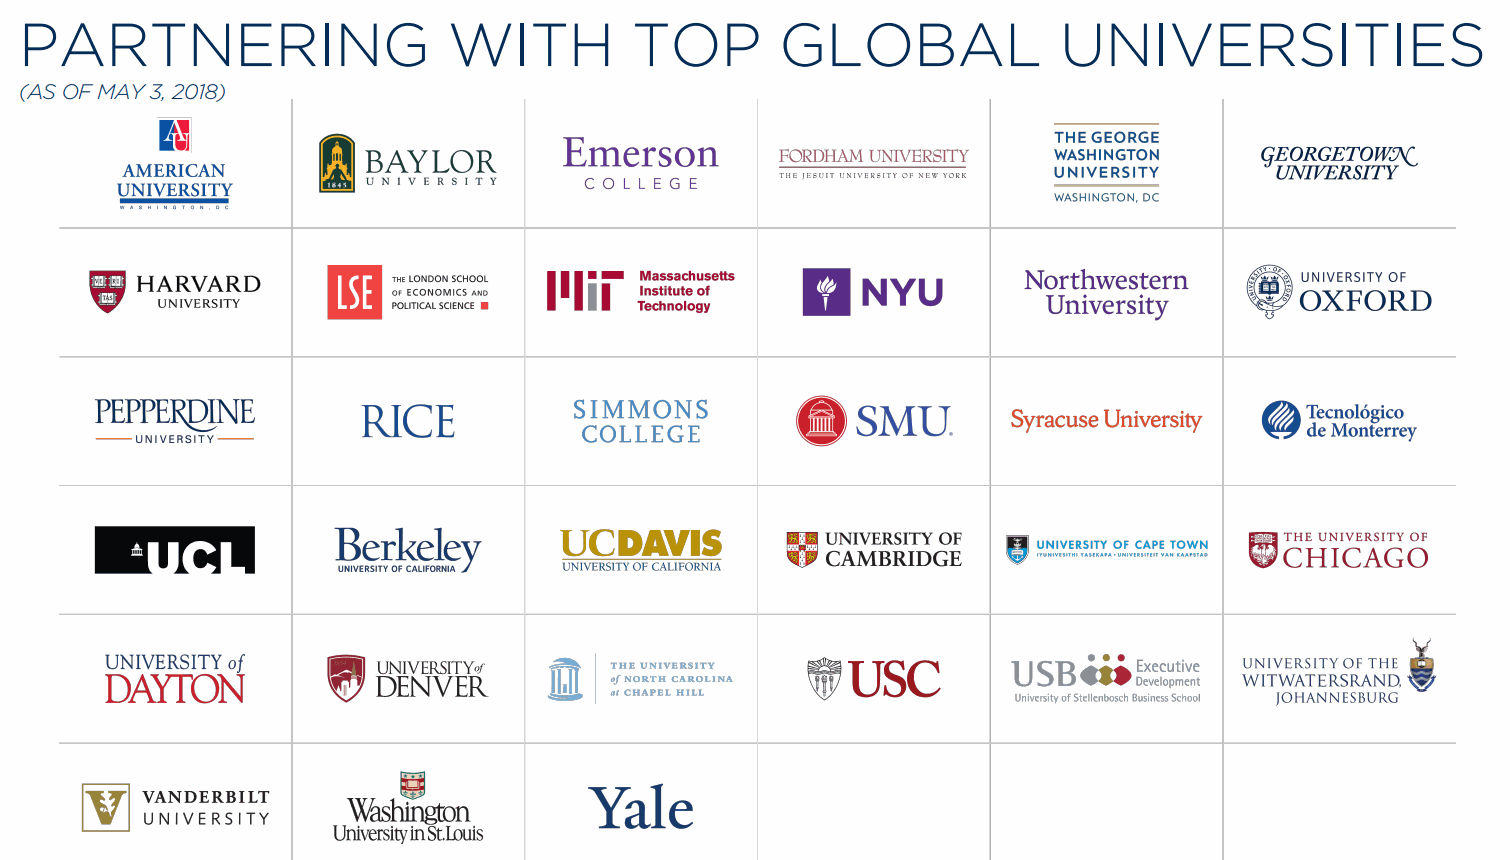 2U PARTNERING WITH TOP GLOBAL UNIVERSITIES